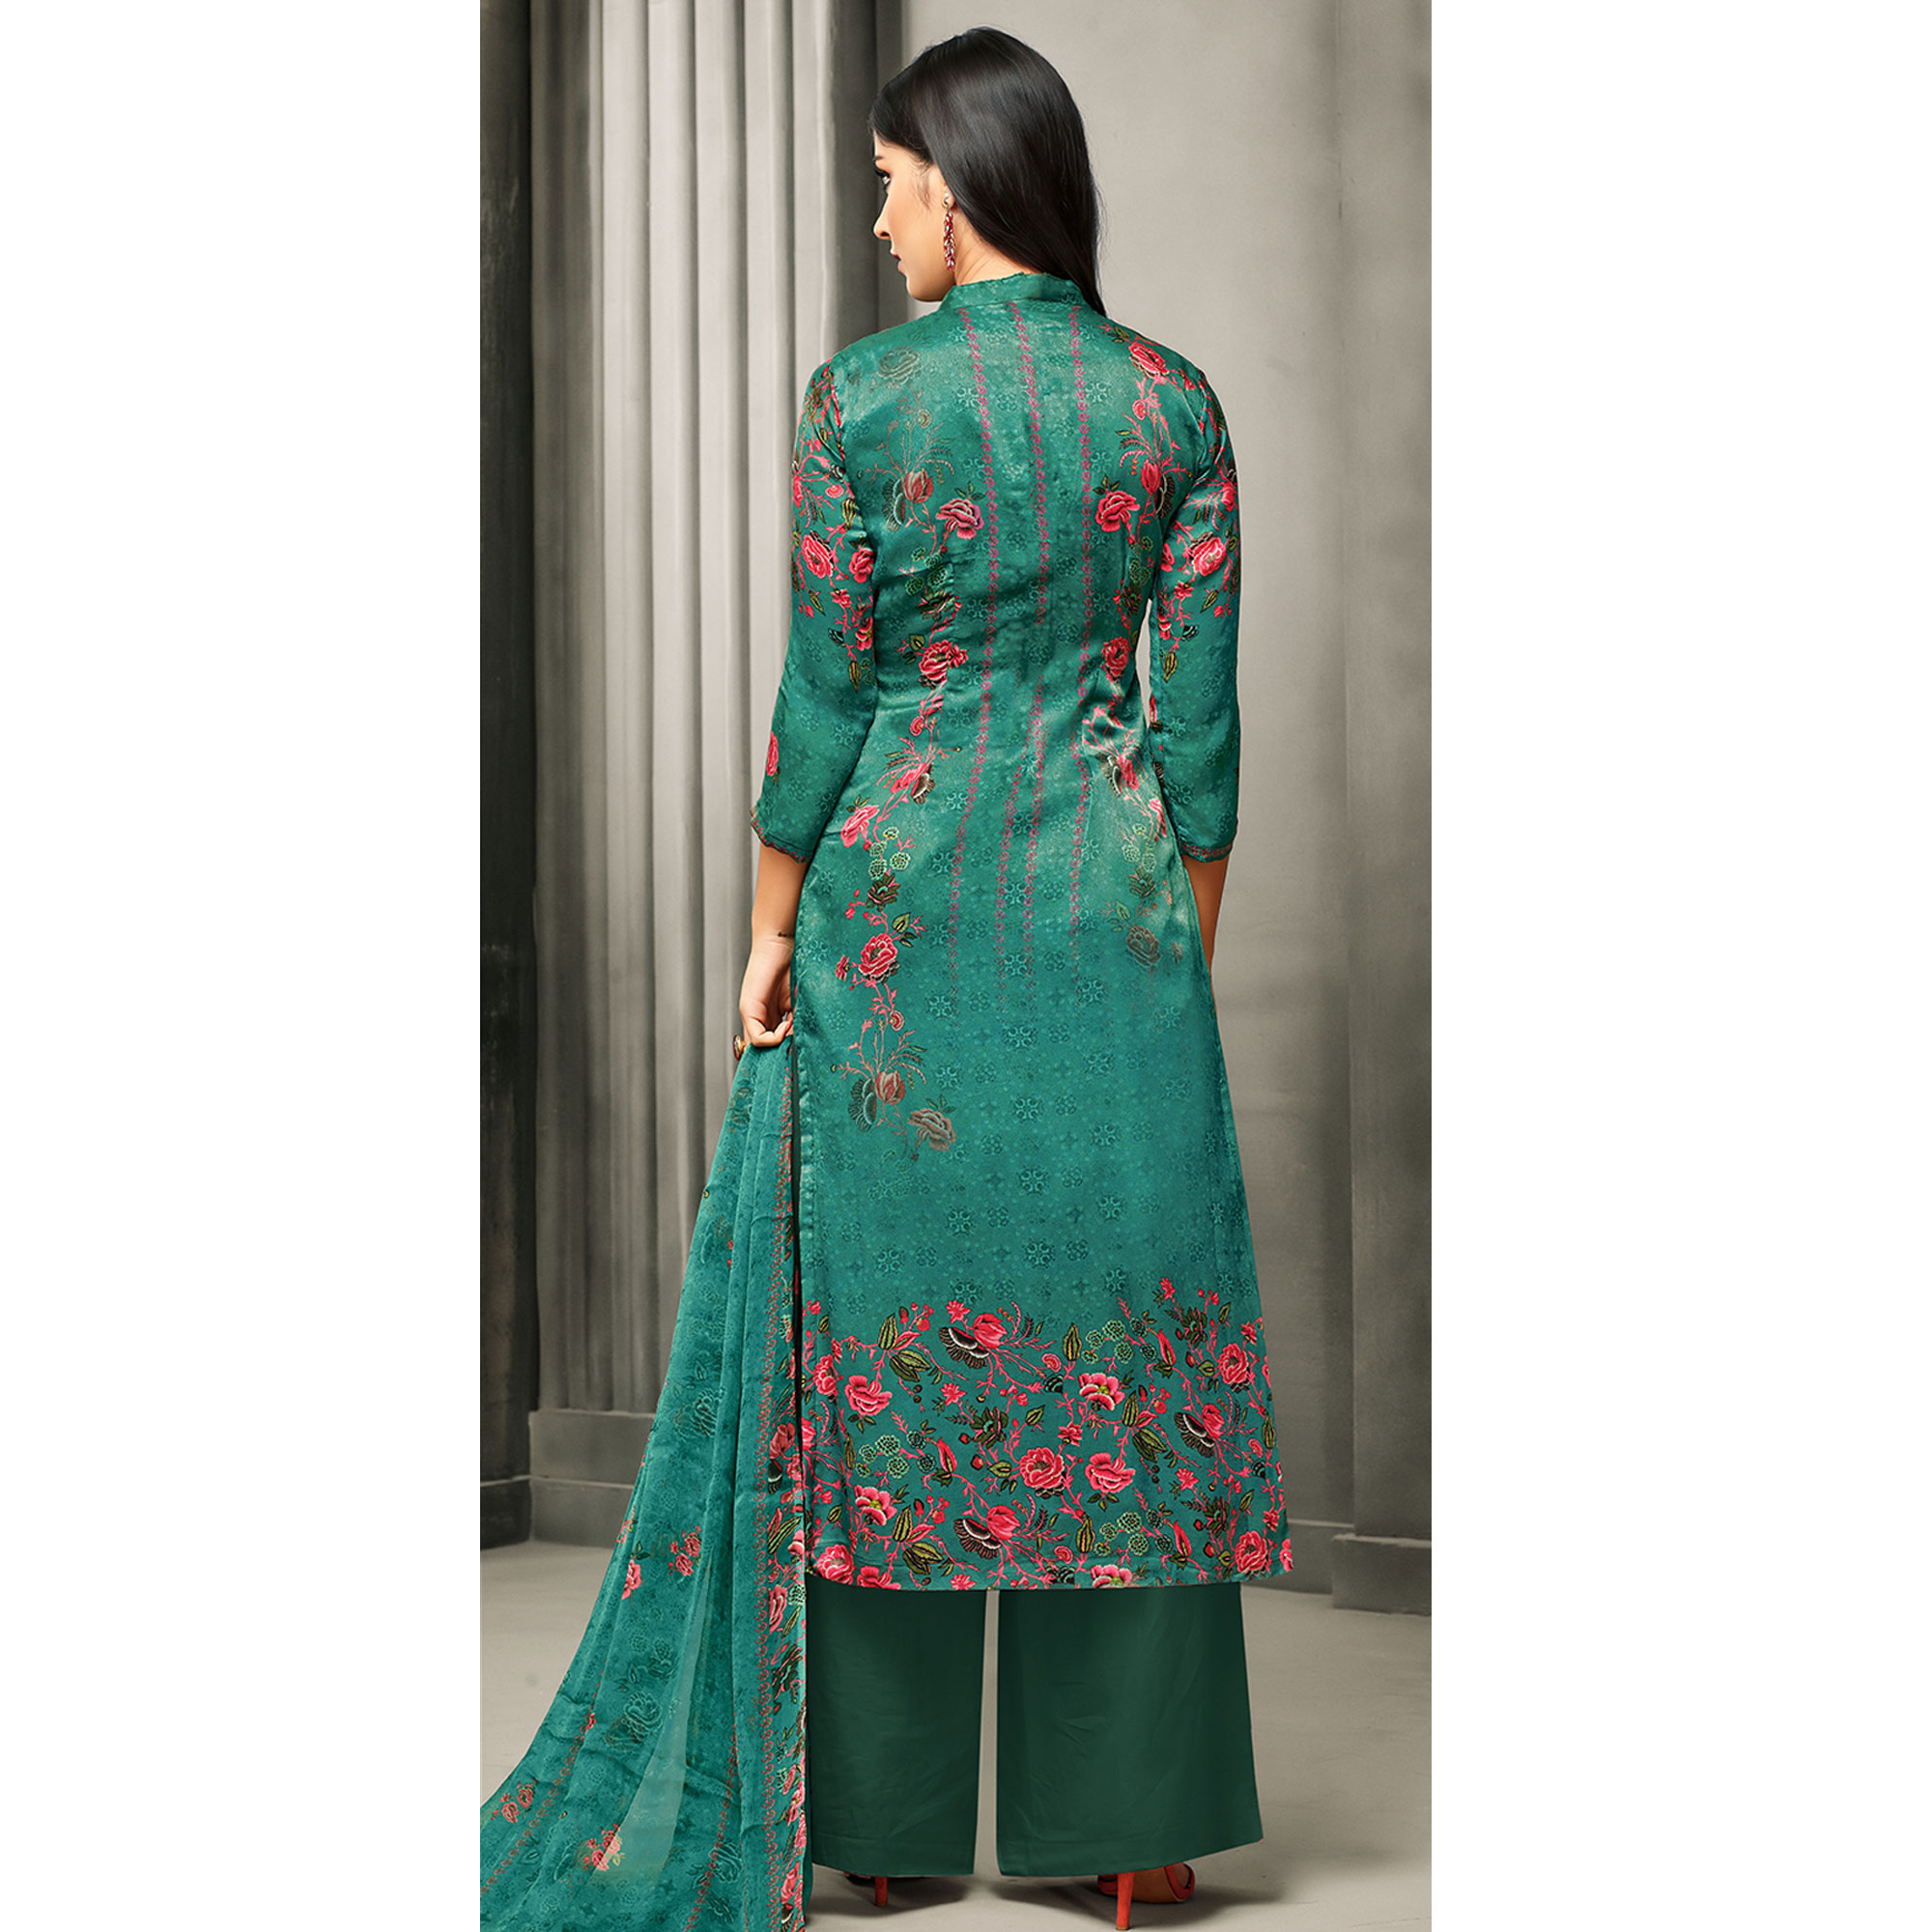 Amazing Turquoise Green Colored Partywear Printed Satin Palazzo Suit